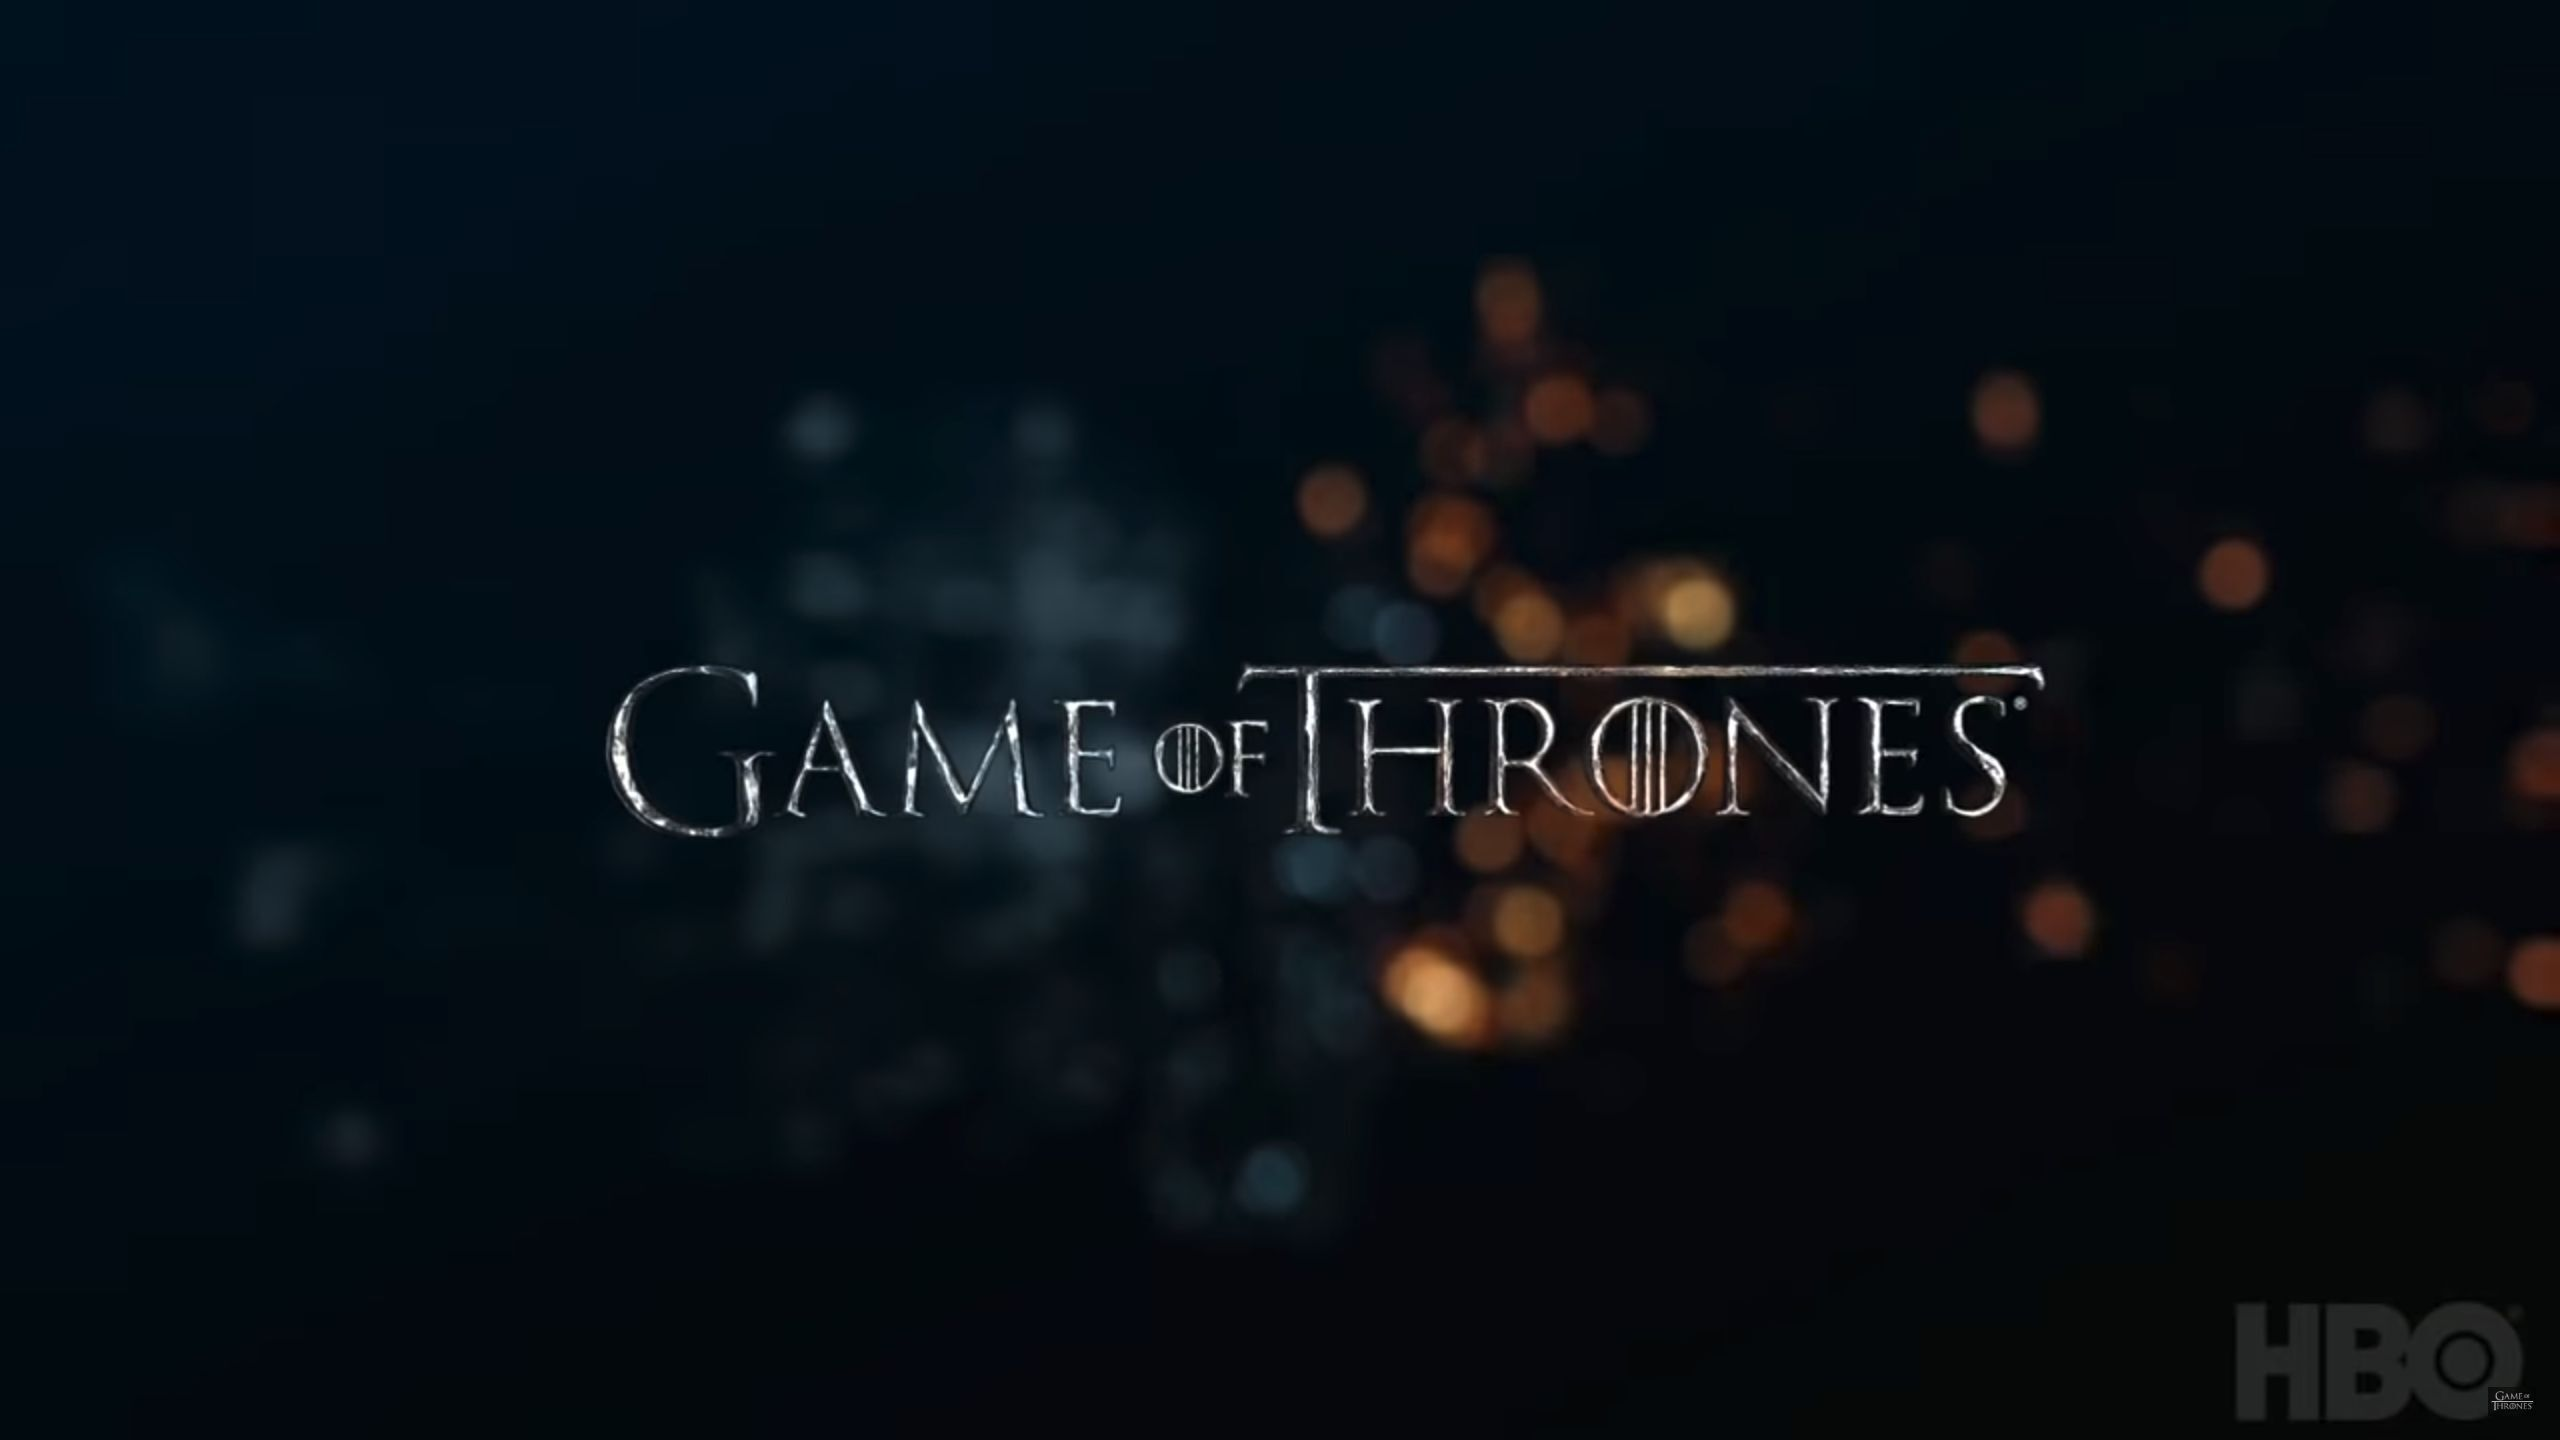 Hbo Revealing Game Of Thrones Season 8 Premiere Date This Sunday